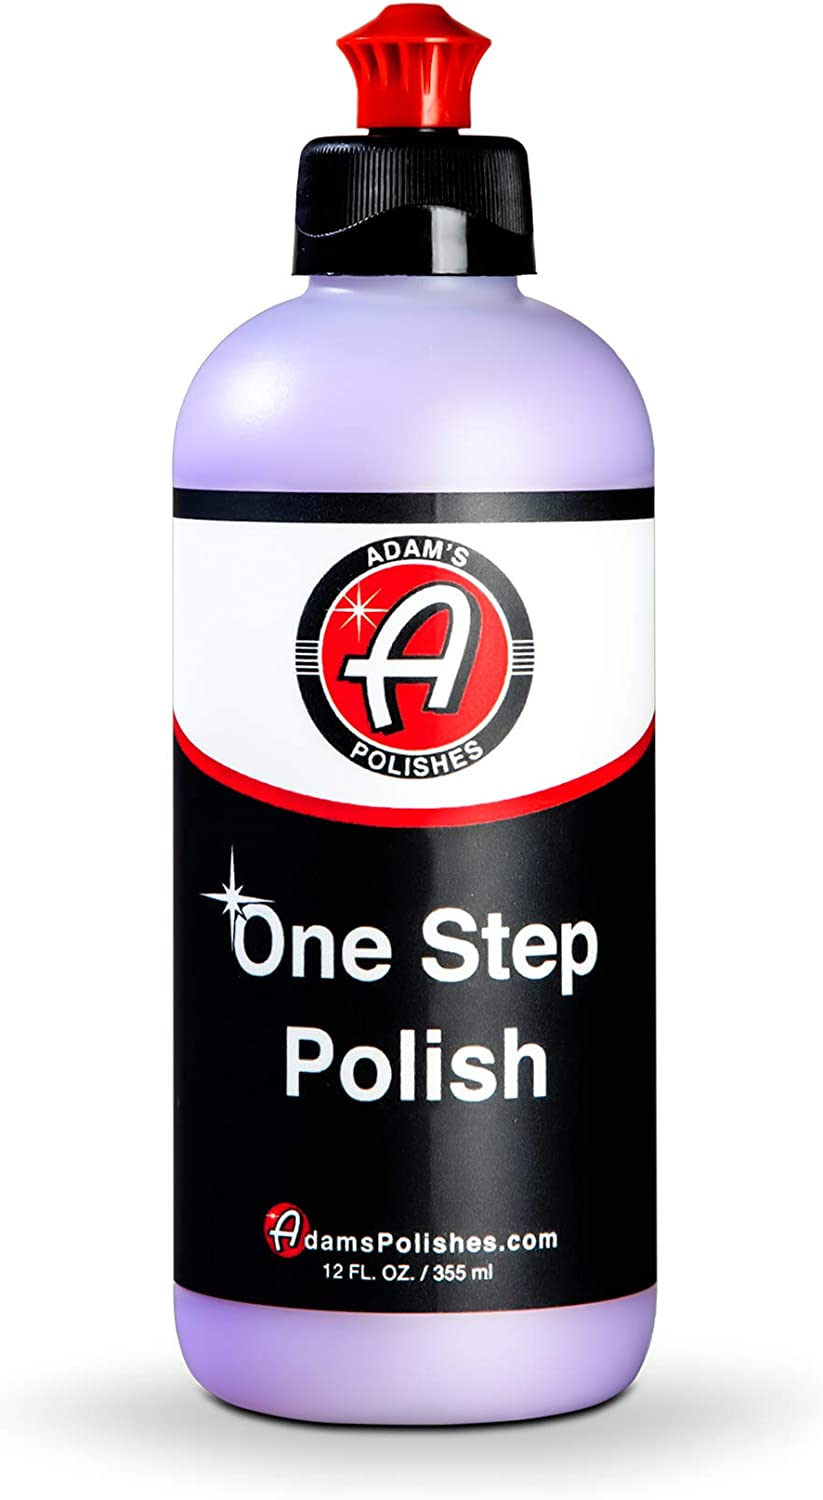 Expertly Designed to Make Polishing and Paint Correction Easy and Quick 3 Pack Adams Premium Polisher Pads Color Coded to Match with Recommended Polishes or Compounds 2, Blue Compound Pad